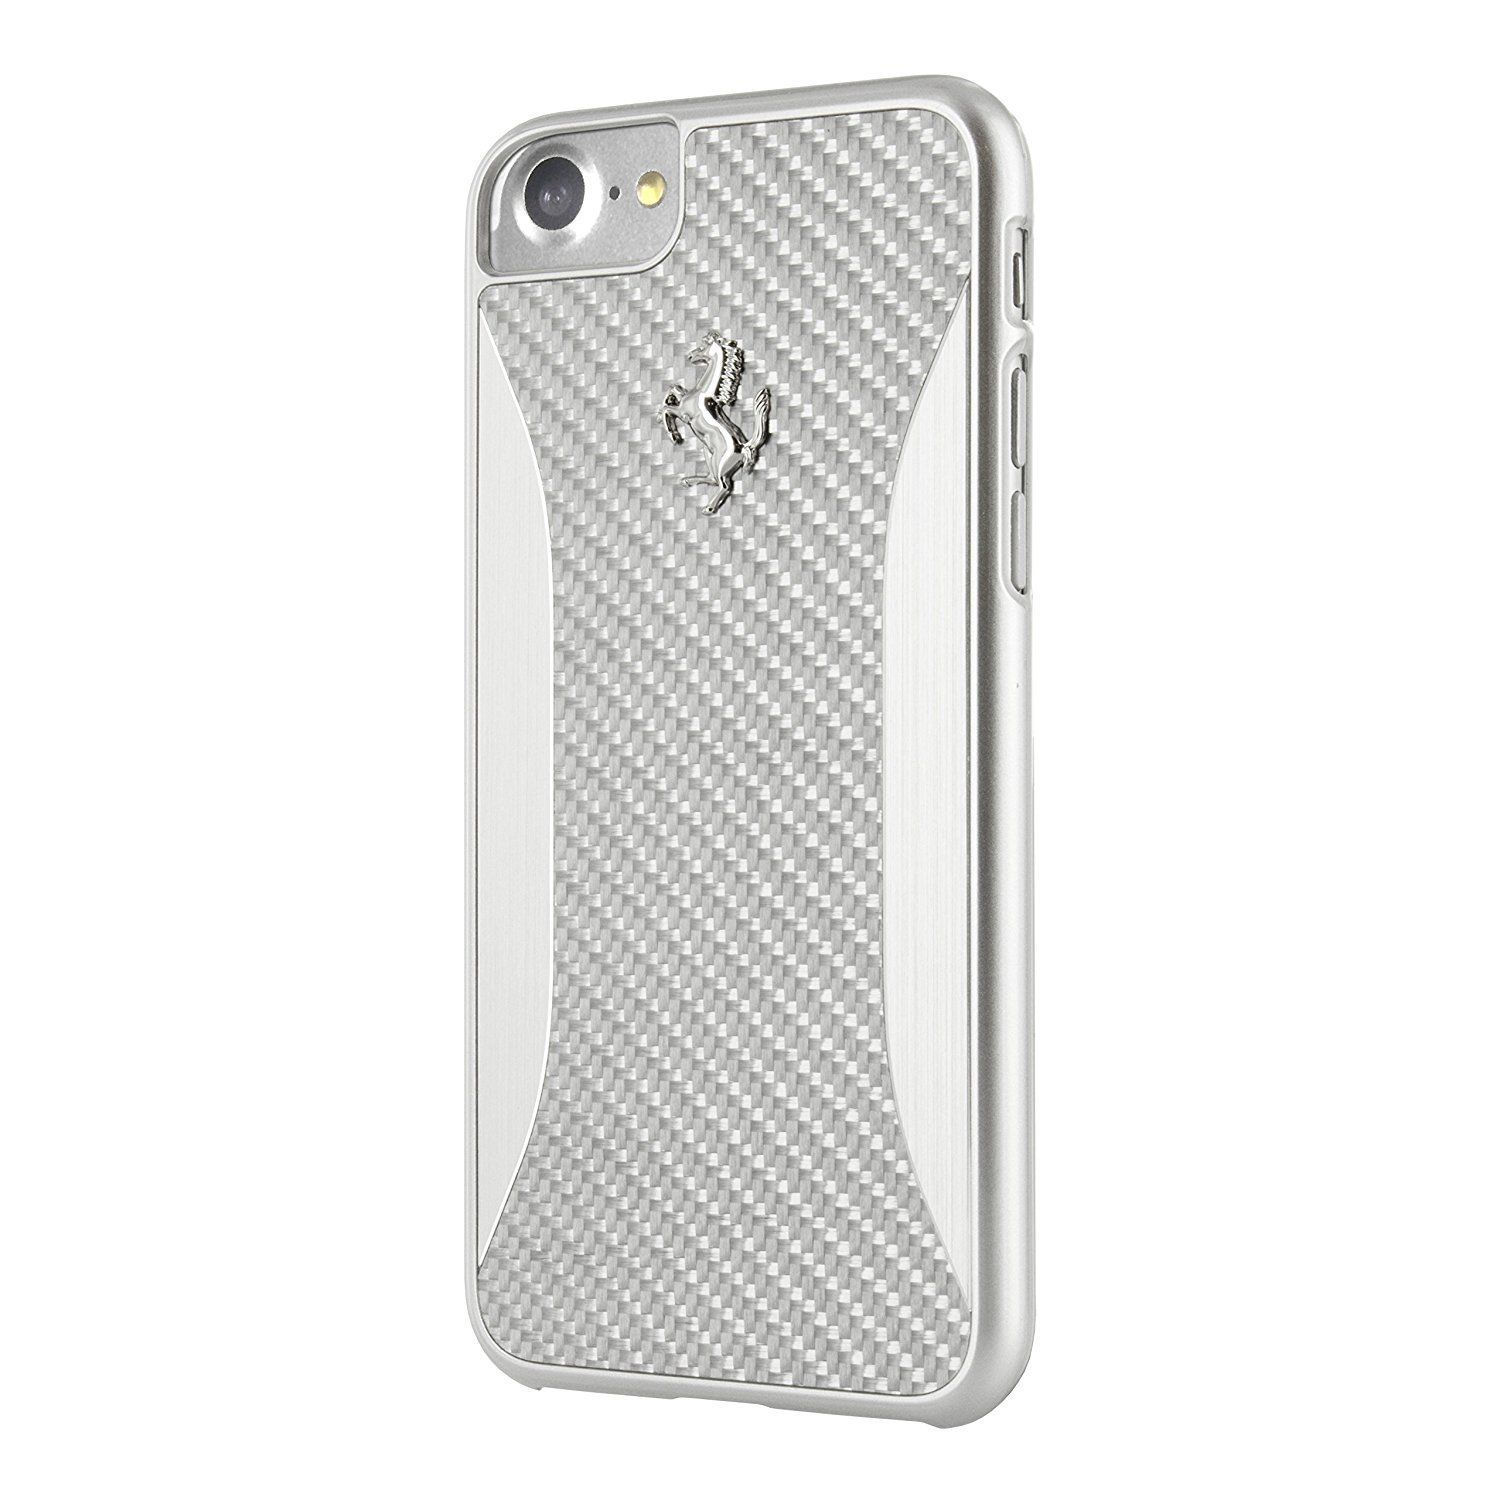 06d53c58947 Ferrari Scudaria Carbon Fiber Hard Case for Apple iPhone 7 - Silver ...